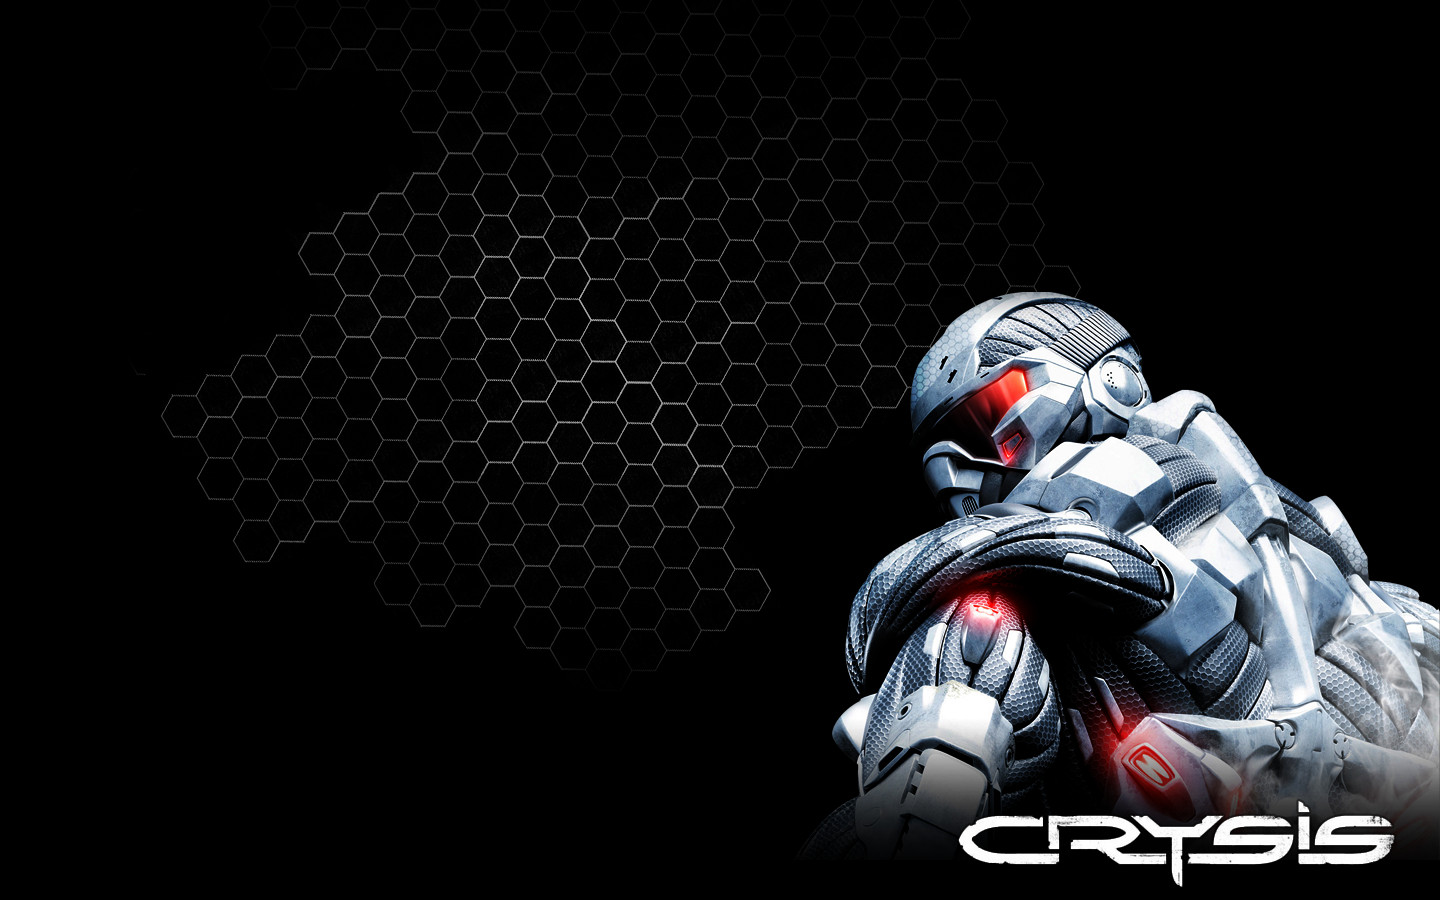 crysis wallpaper by budgey27 on deviantart